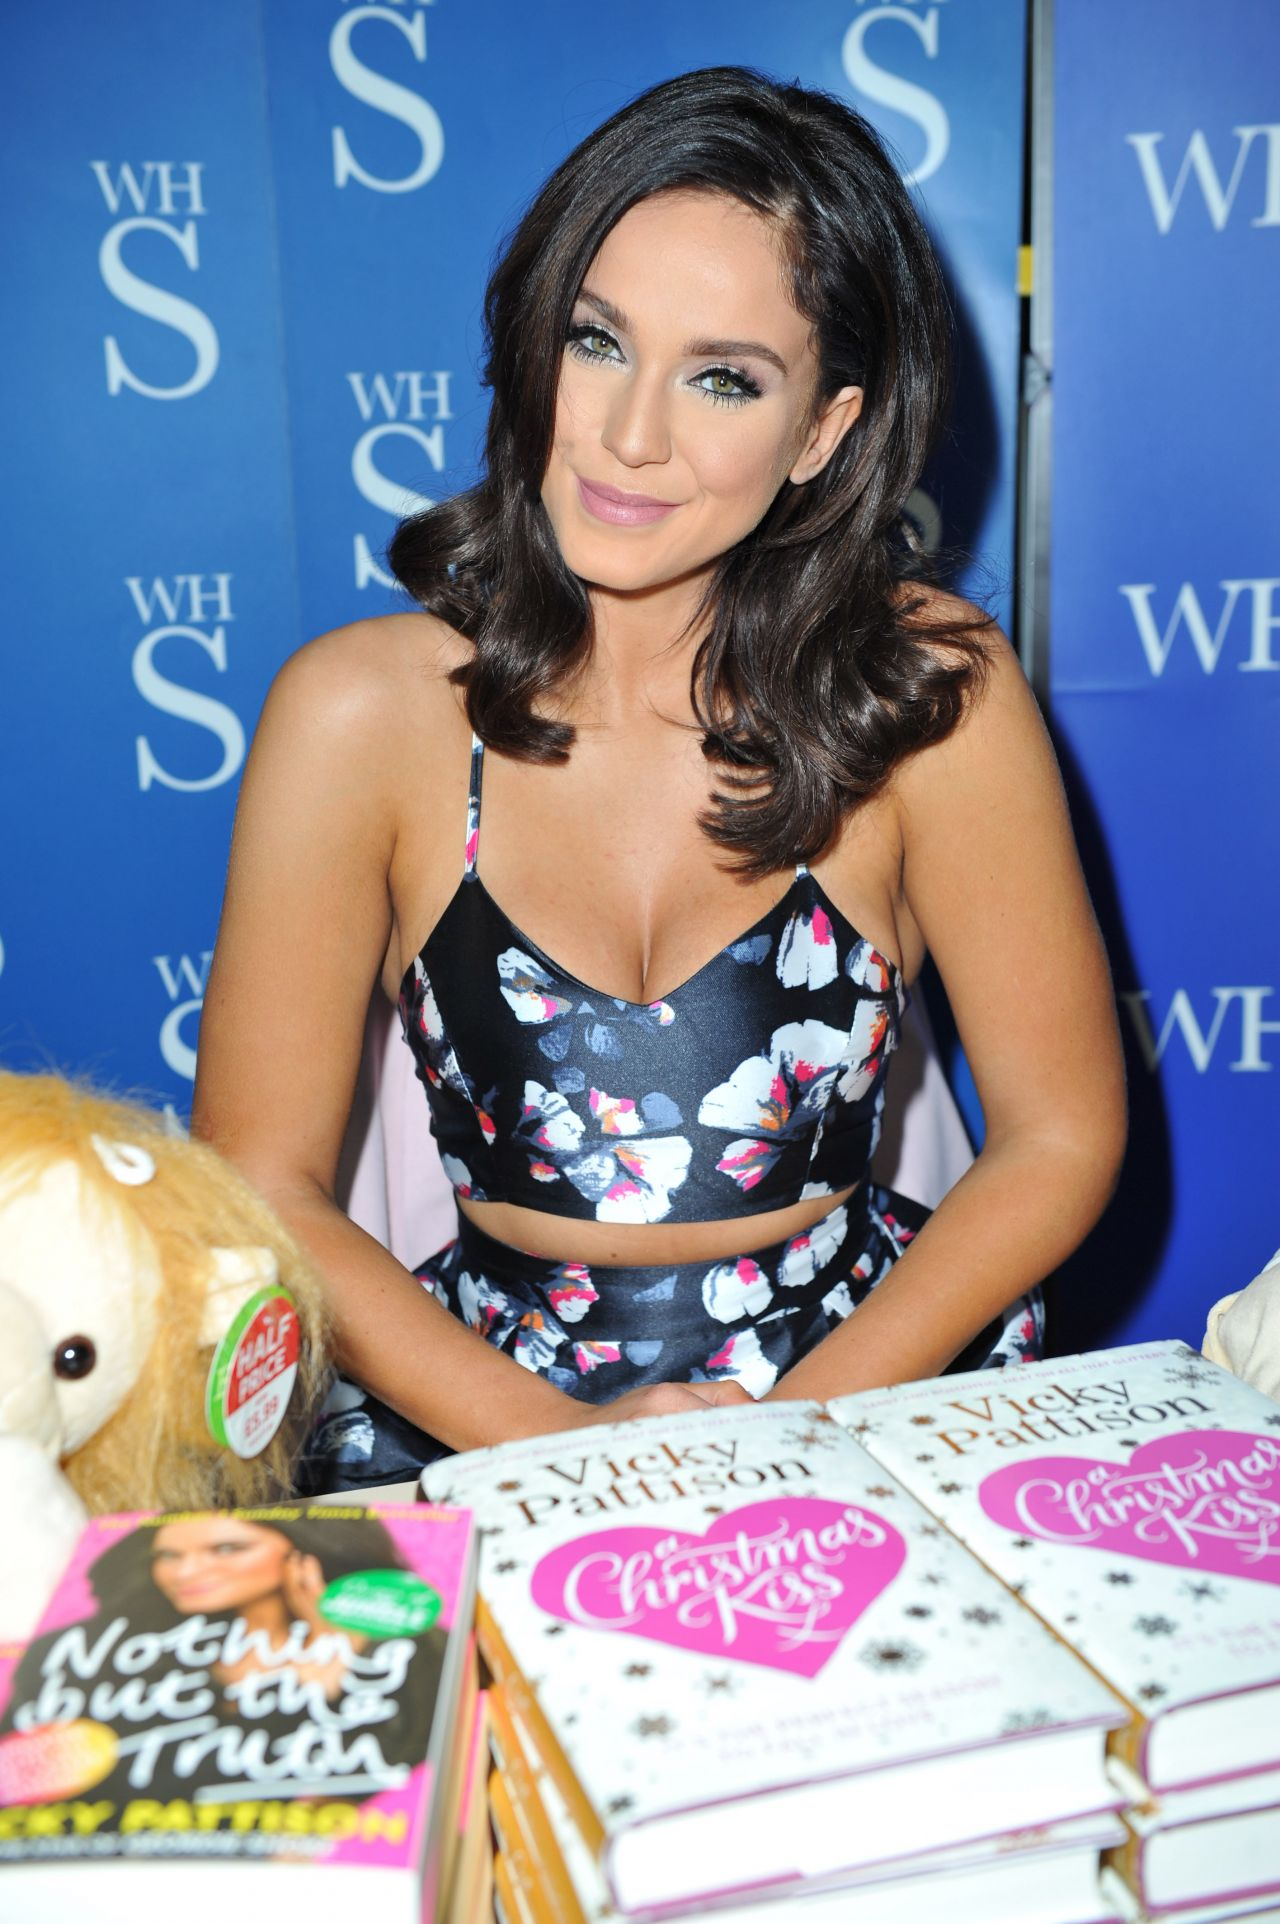 How to book a celebrity for birthday party